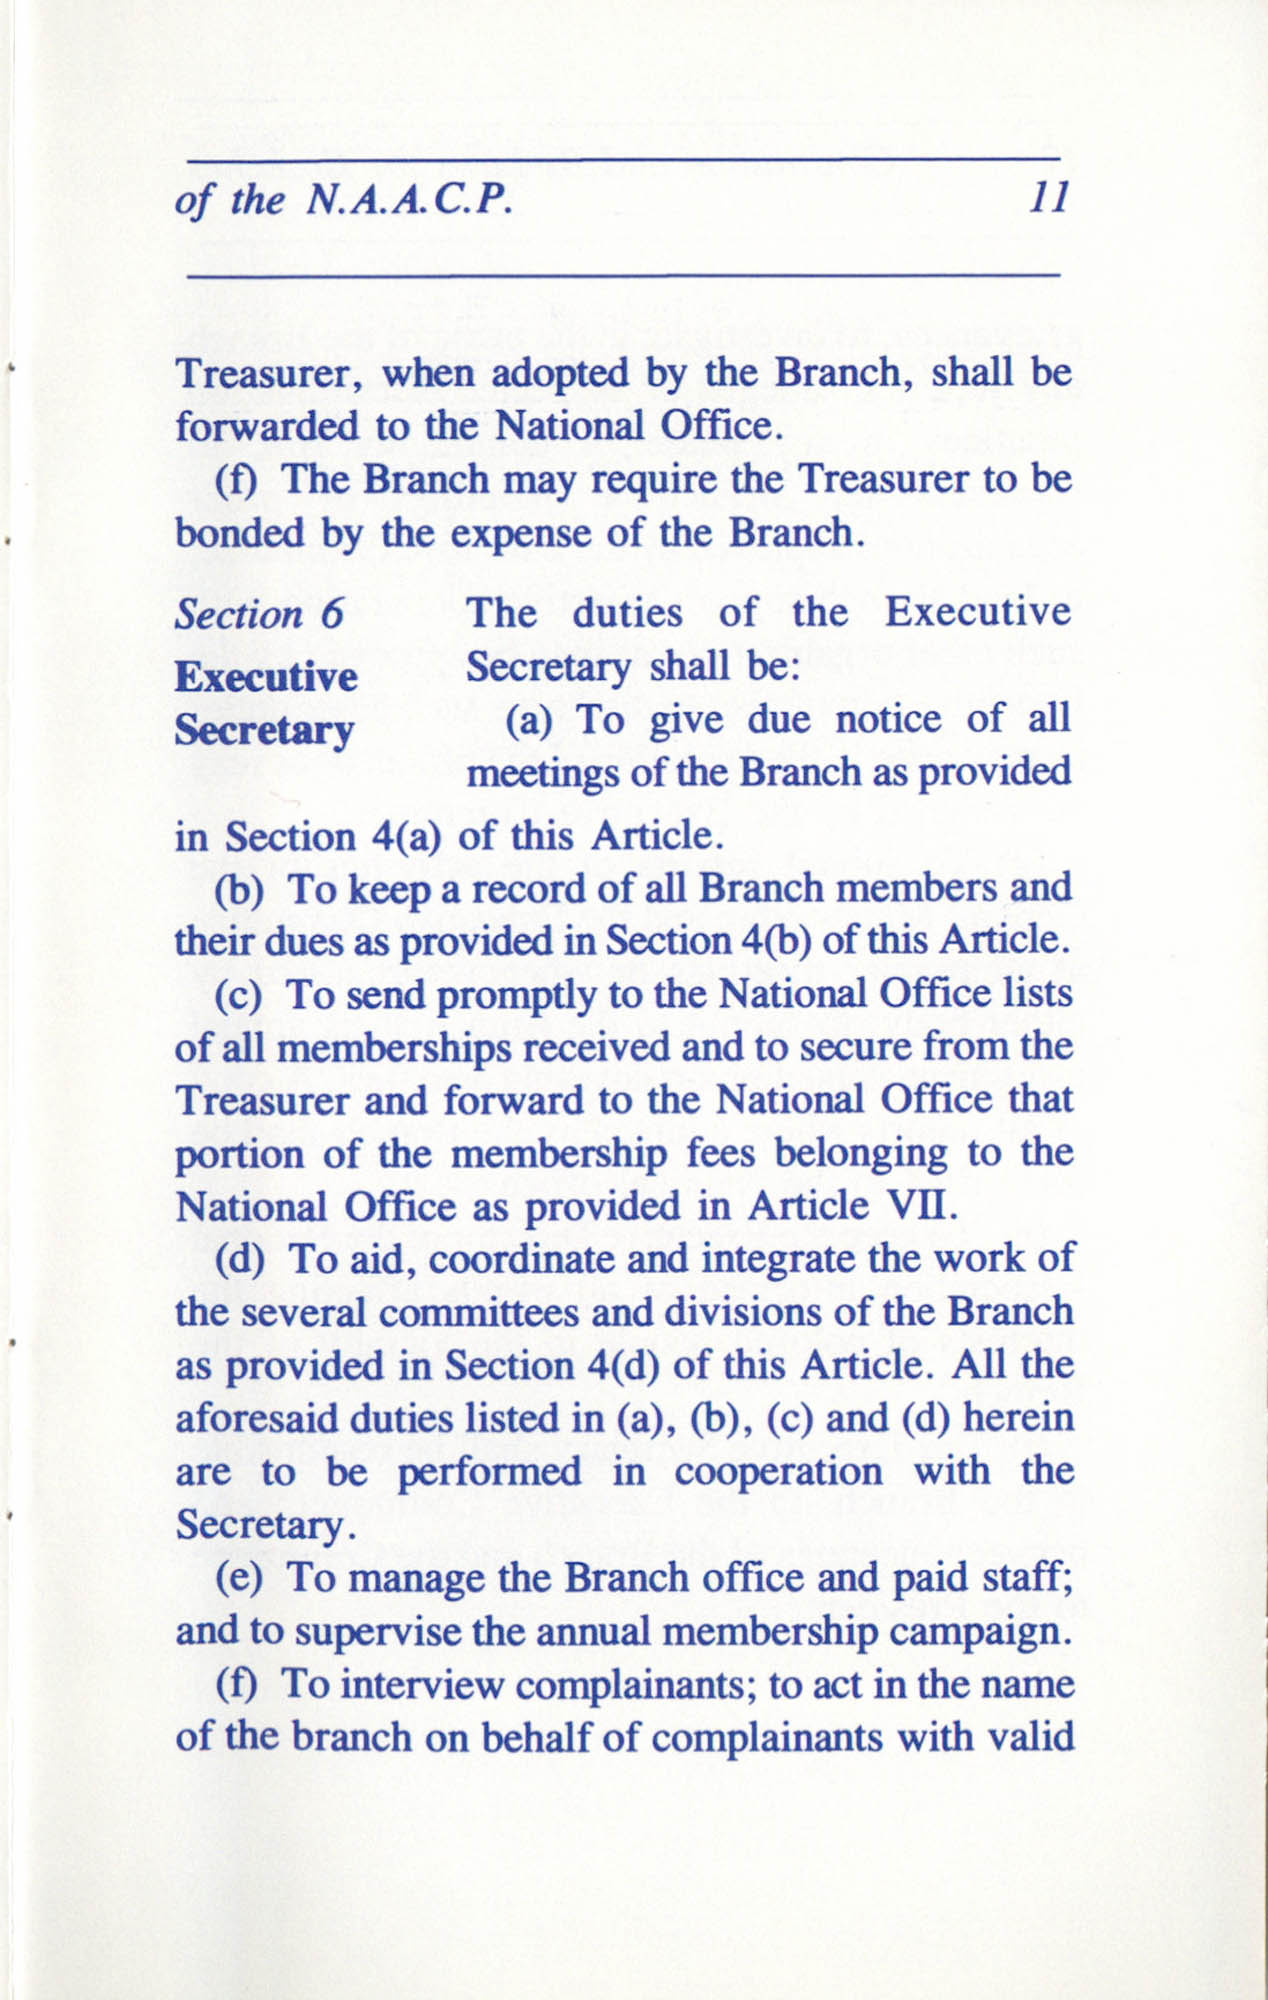 Constitution and By-Laws for Branches of the NAACP, June 1993, Page 11